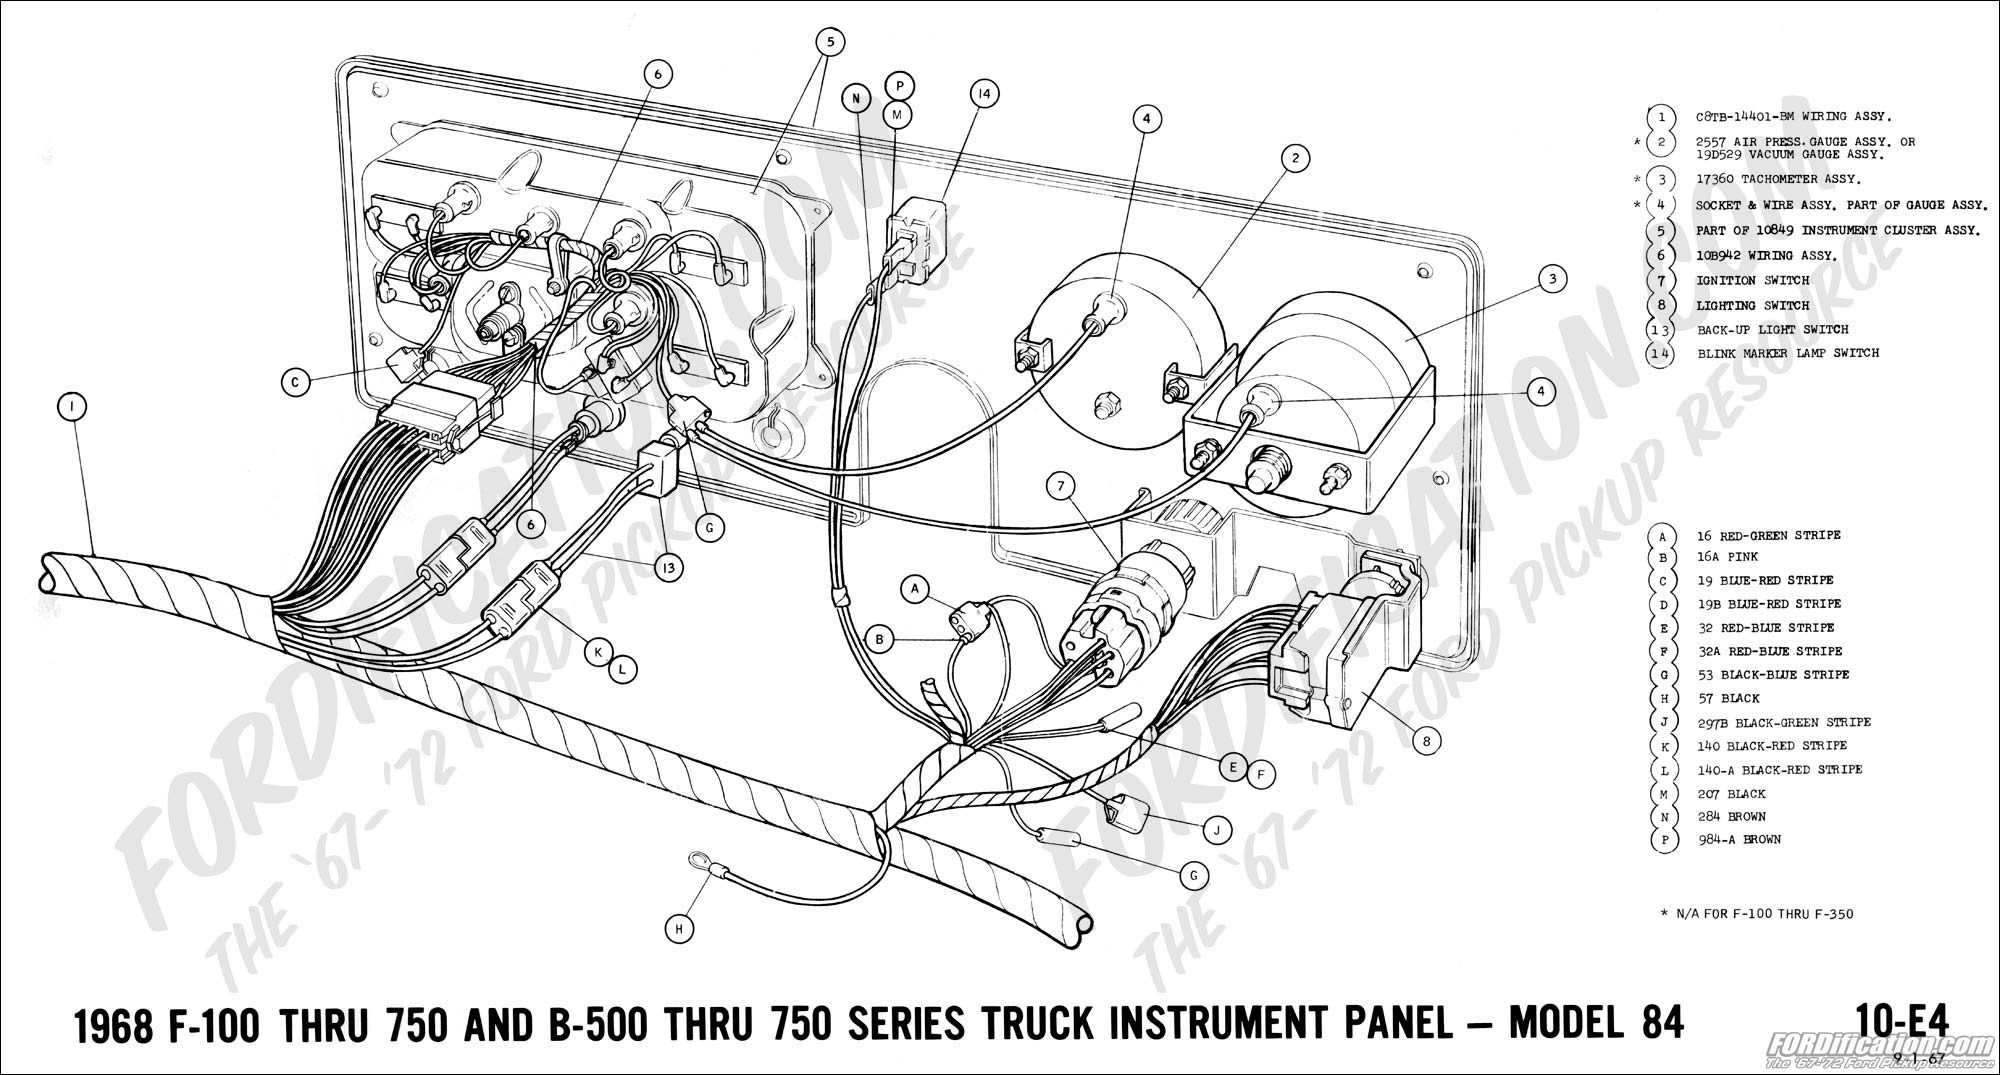 78 F150 Wiring Diagram Instrument Panel Gauges Content Resource Of 1984 Ford Pinto Truck Technical Drawings And Schematics Section H Rh Fordification Com 1978 Dodge Diagrams